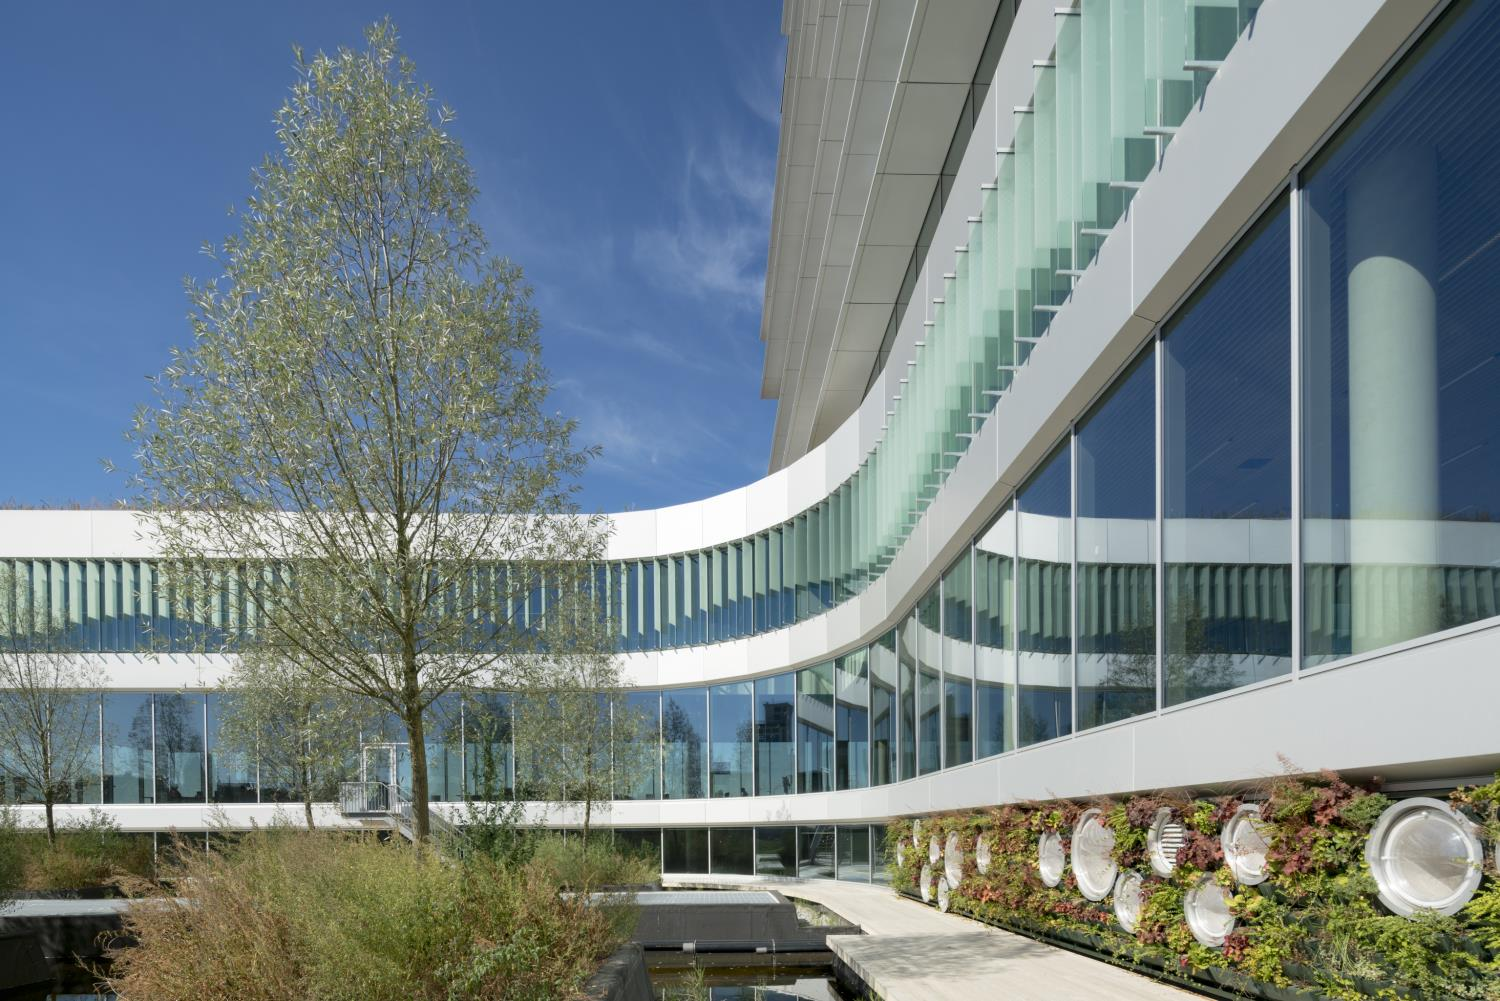 The constructed wetland filters rainwater and water from sinks for use in the green façade and flushing toilets